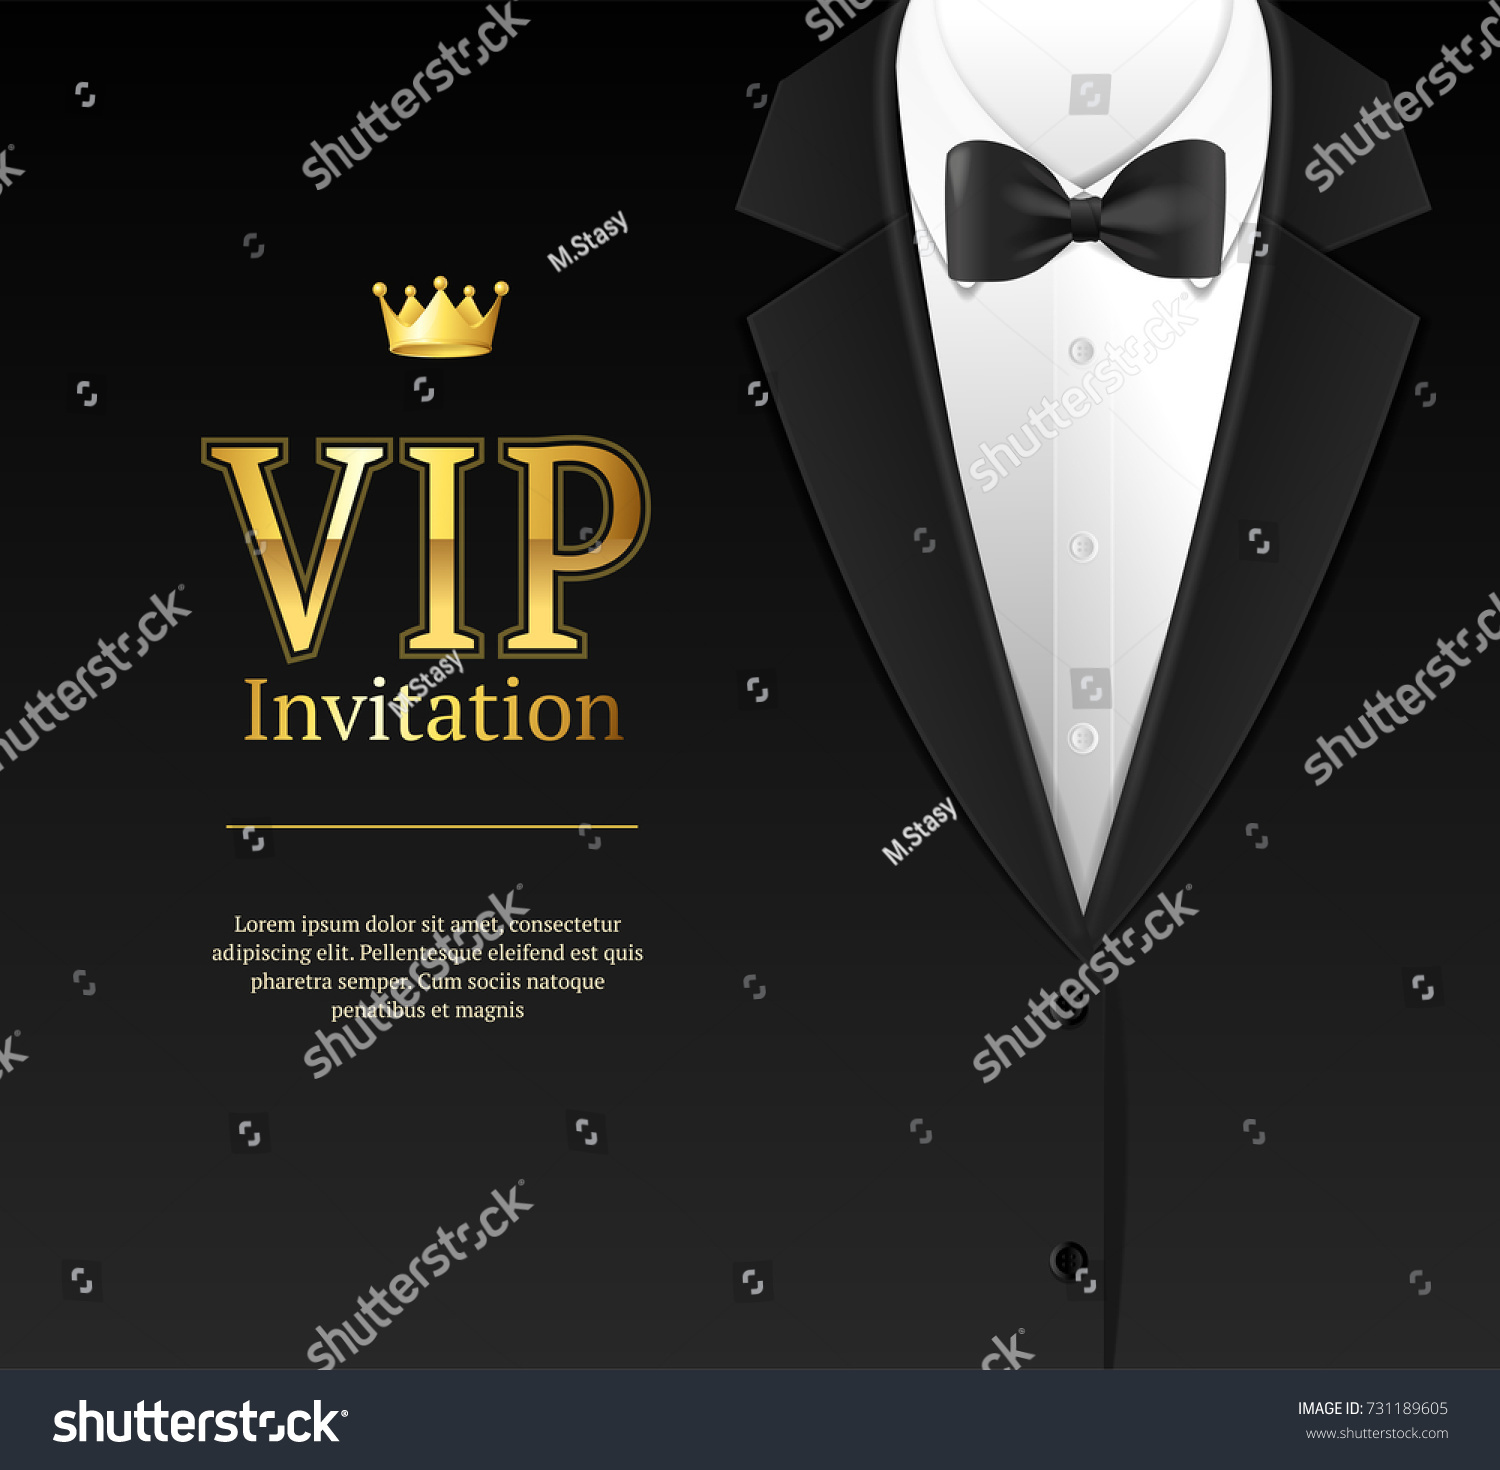 Vip Invitation With Bow Tie Template Card Banner For Ceremony, Party Luxury  Style. Vector